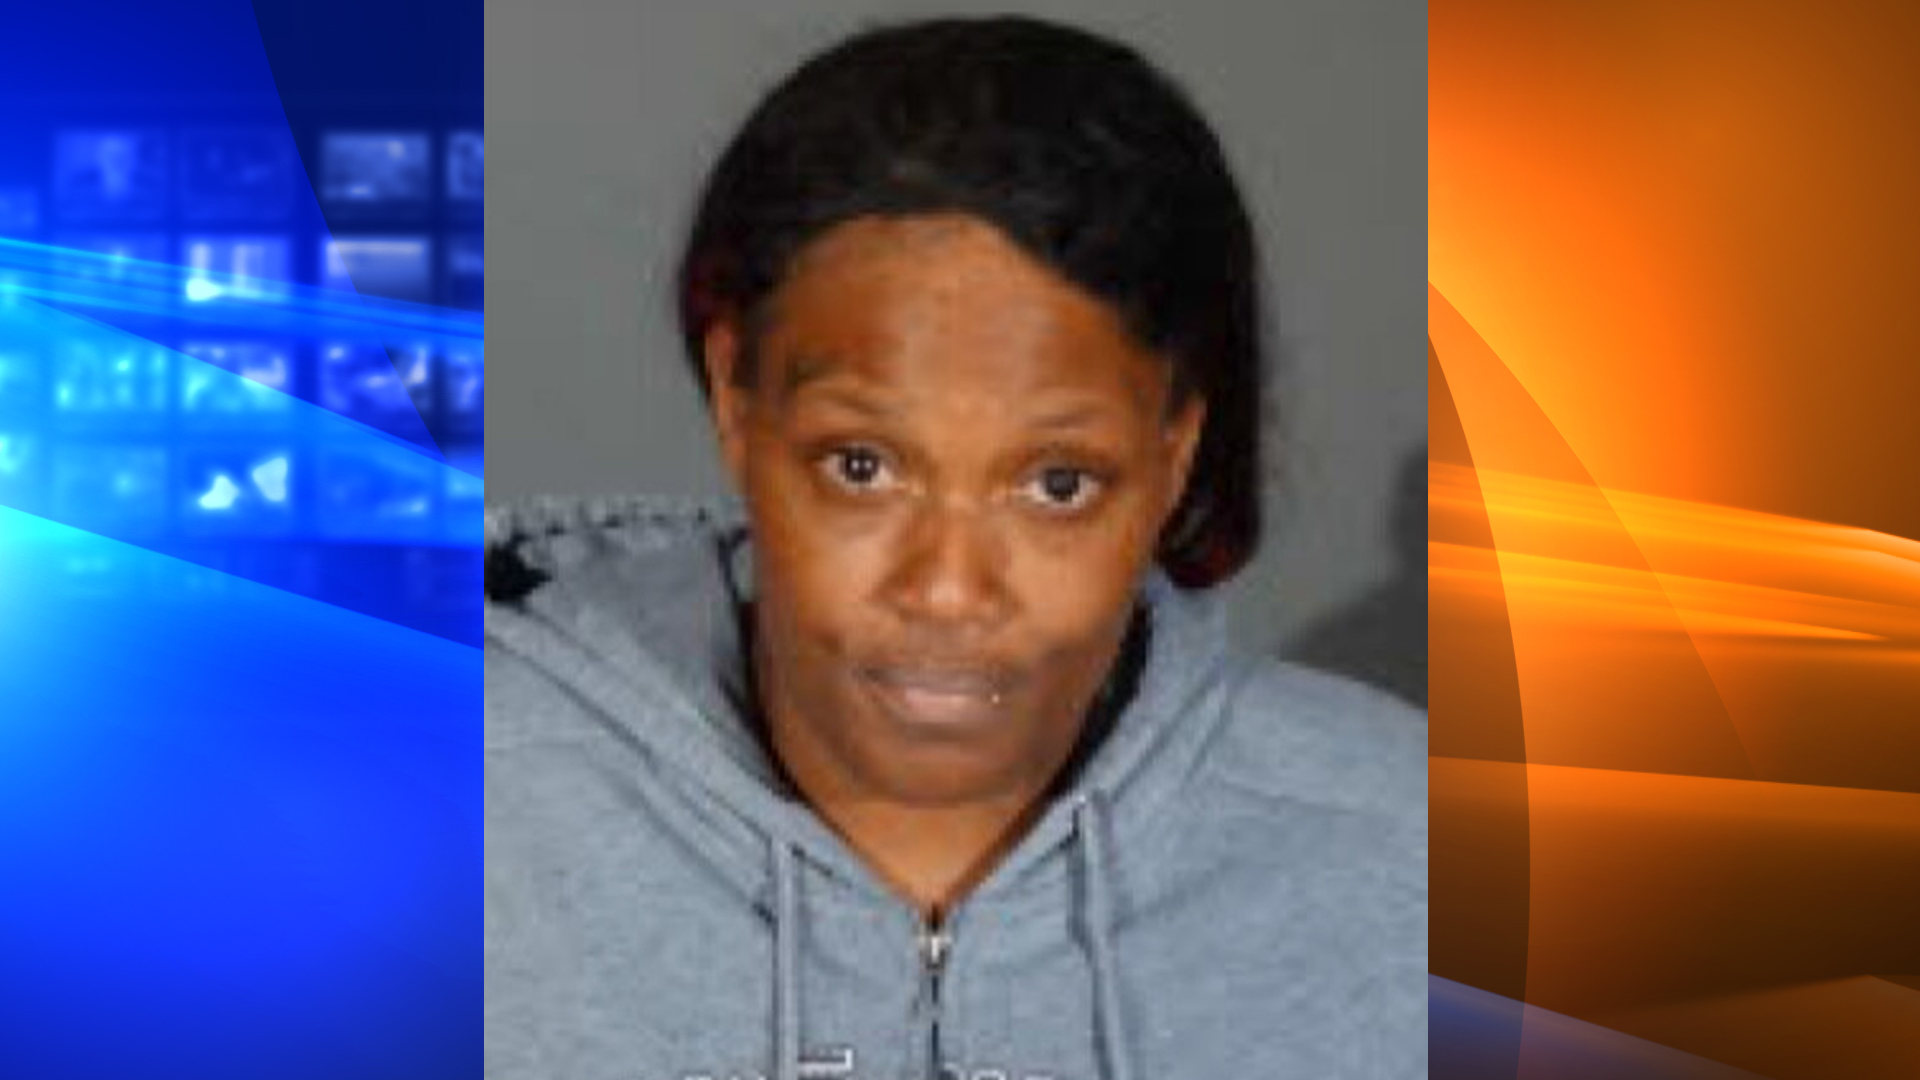 Shalonda Shaw, 23, is seen in an undated photo provided by the Los Angeles Fire Department on Sep. 6, 2019.